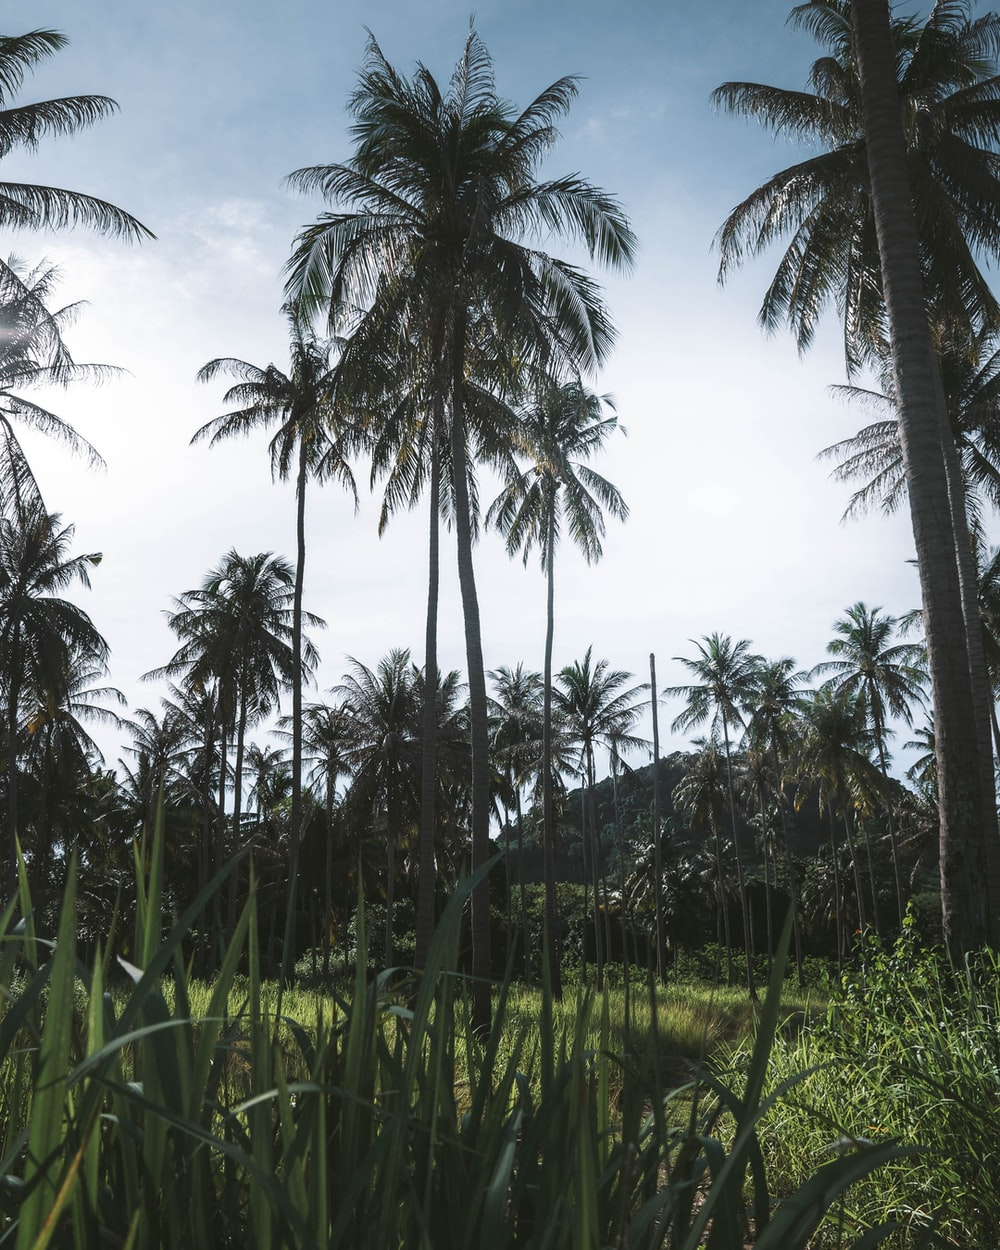 green coconut palm trees under blue sky during daytime